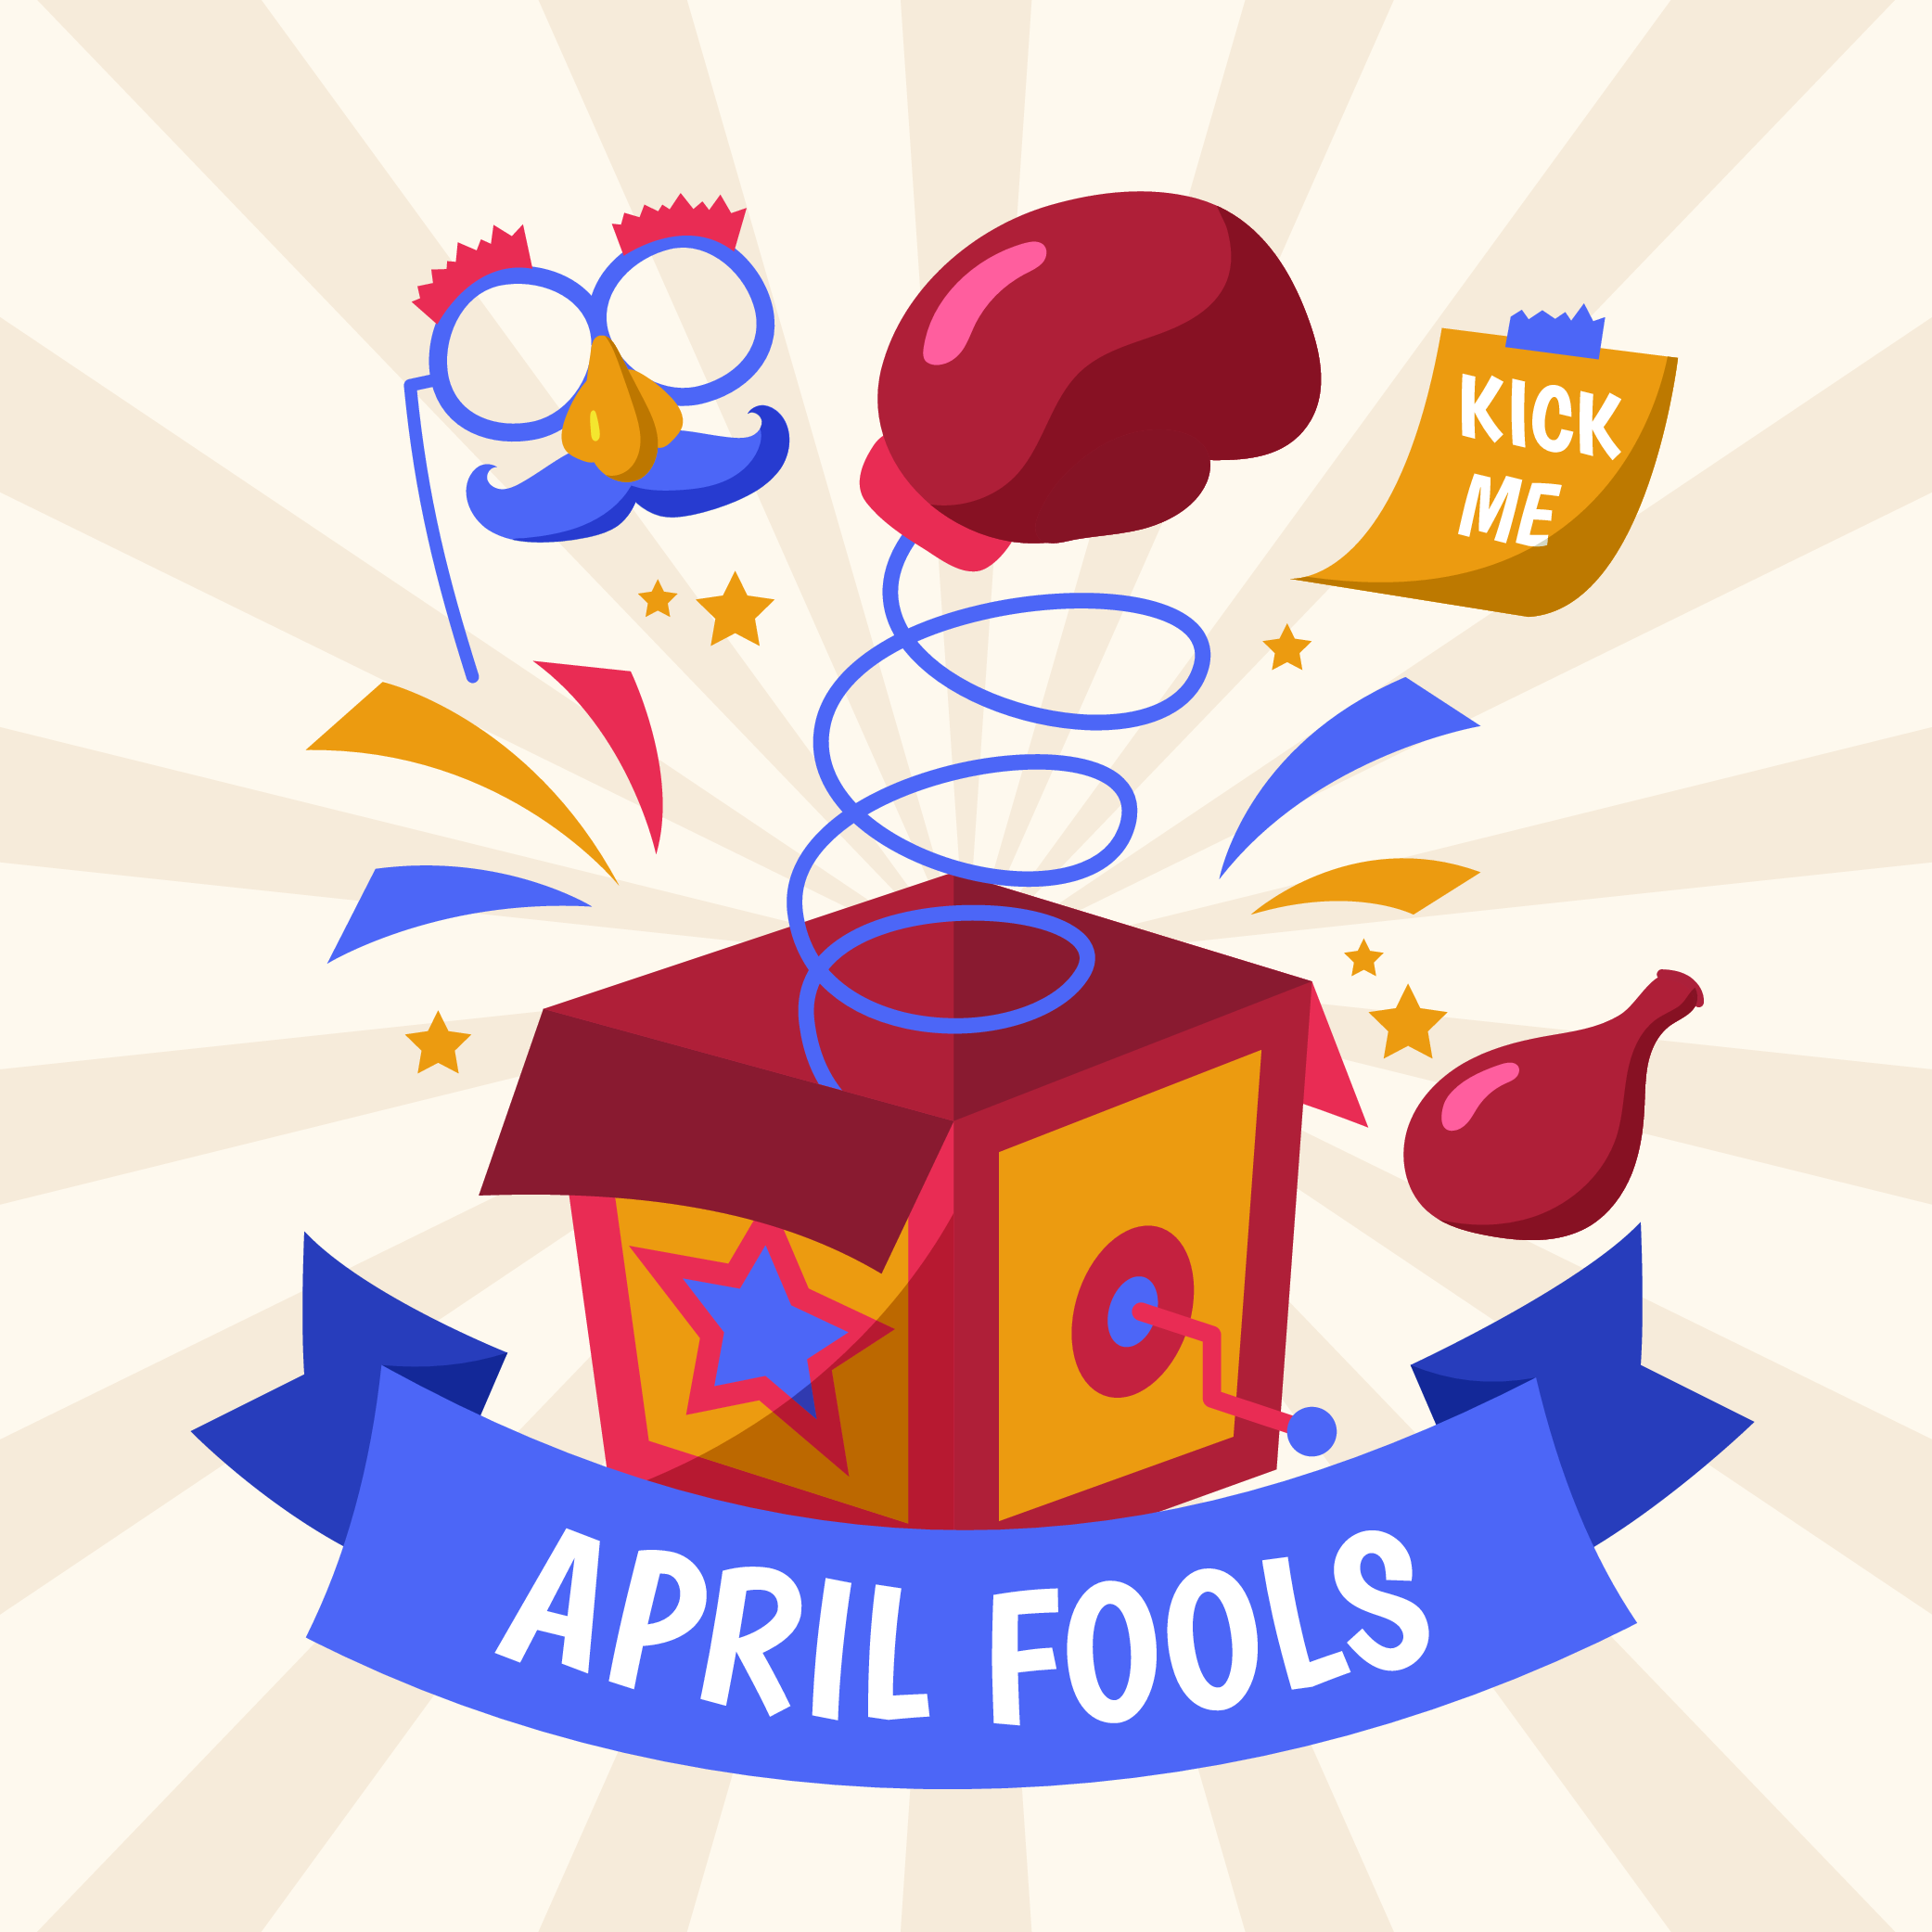 Family-Friendly April Fools' Day Pranks